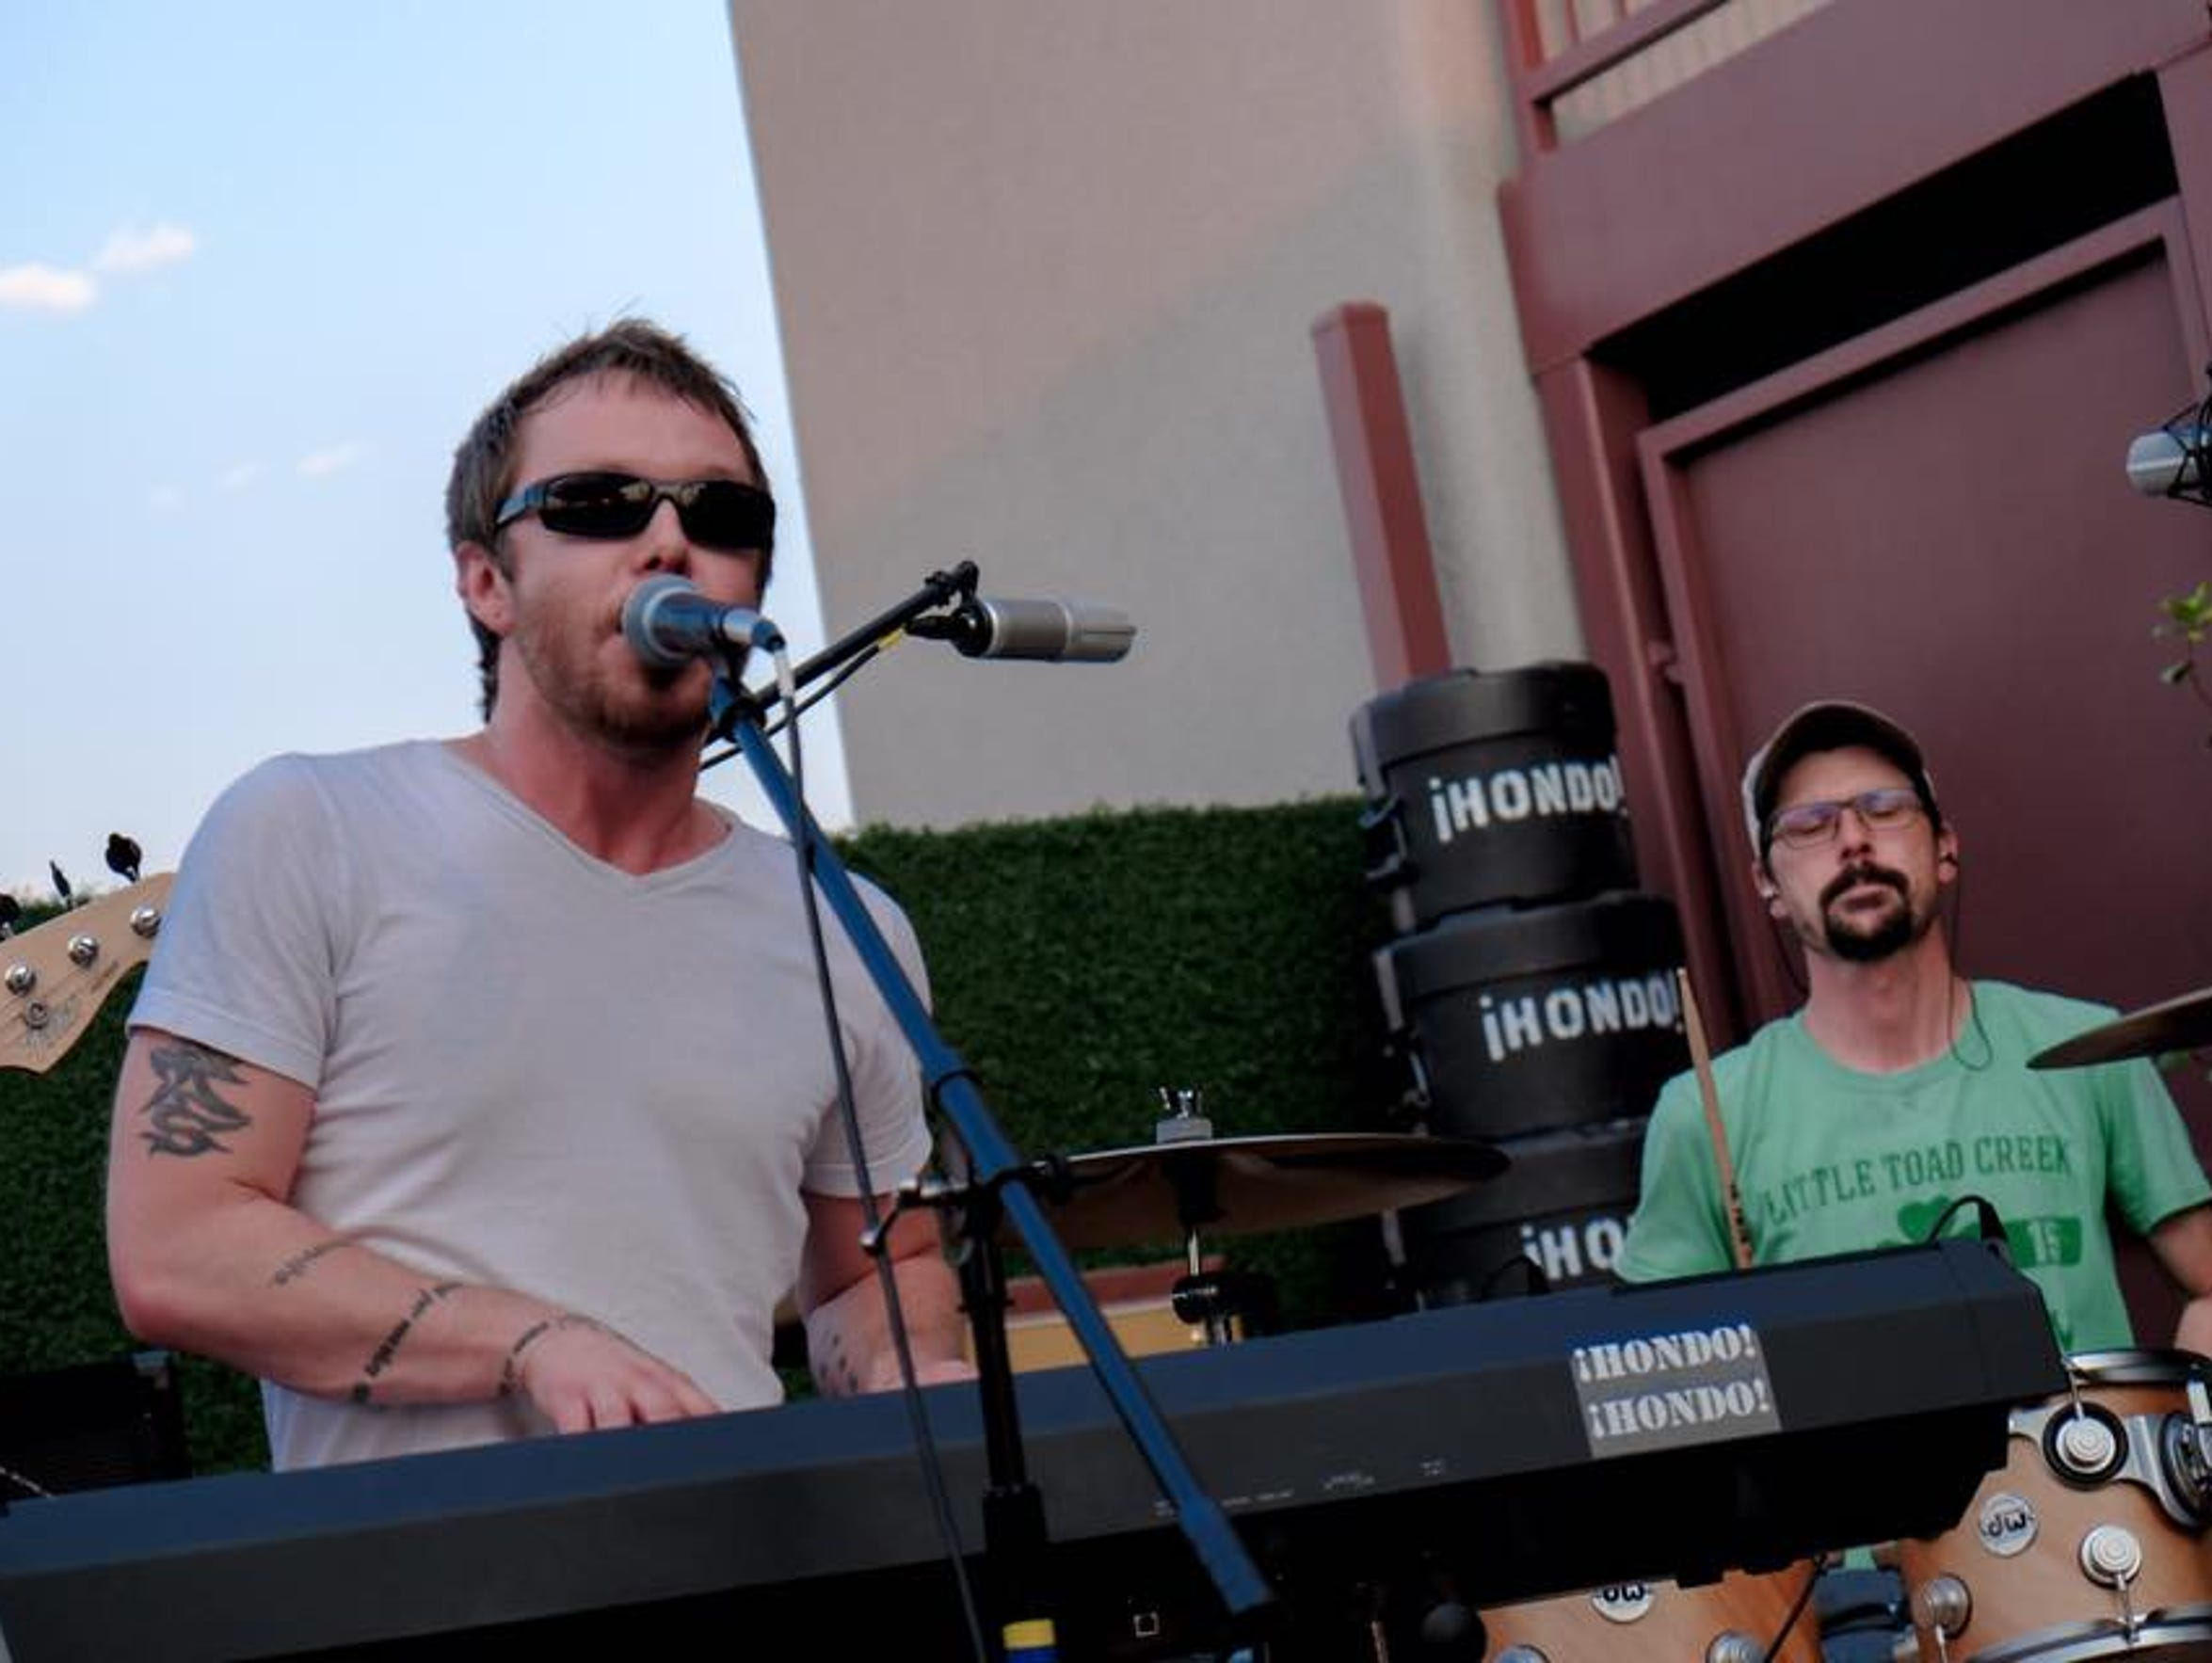 From left to right, ¡HONDO! ¡HONDO! band members Alex Hallwyler on keyboard and Matt Swanson on drums.